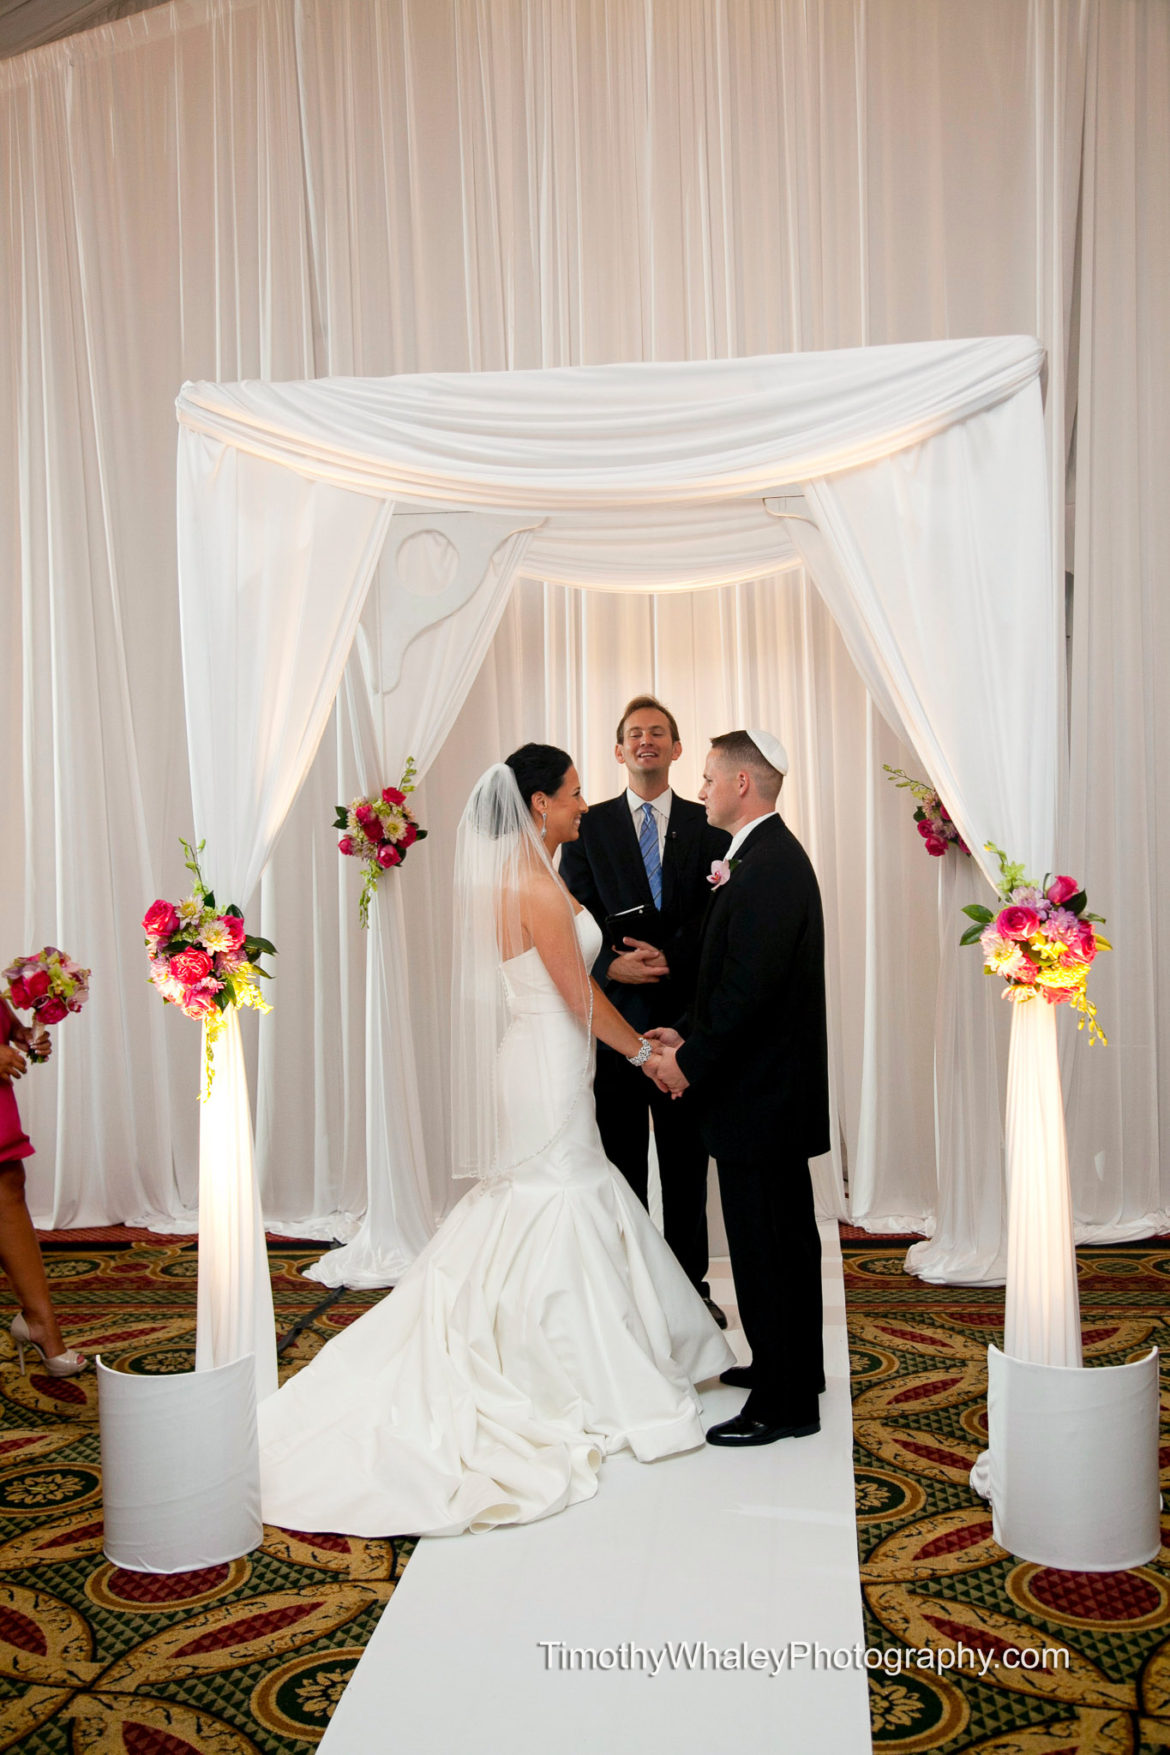 Elegant_Event_Lighting_Chicago_Eaglewood_Resort_Spa_Itasca_Wedding_Bridal_Canopy_Chuppah_White_Draping_Backdrop_Ceremony